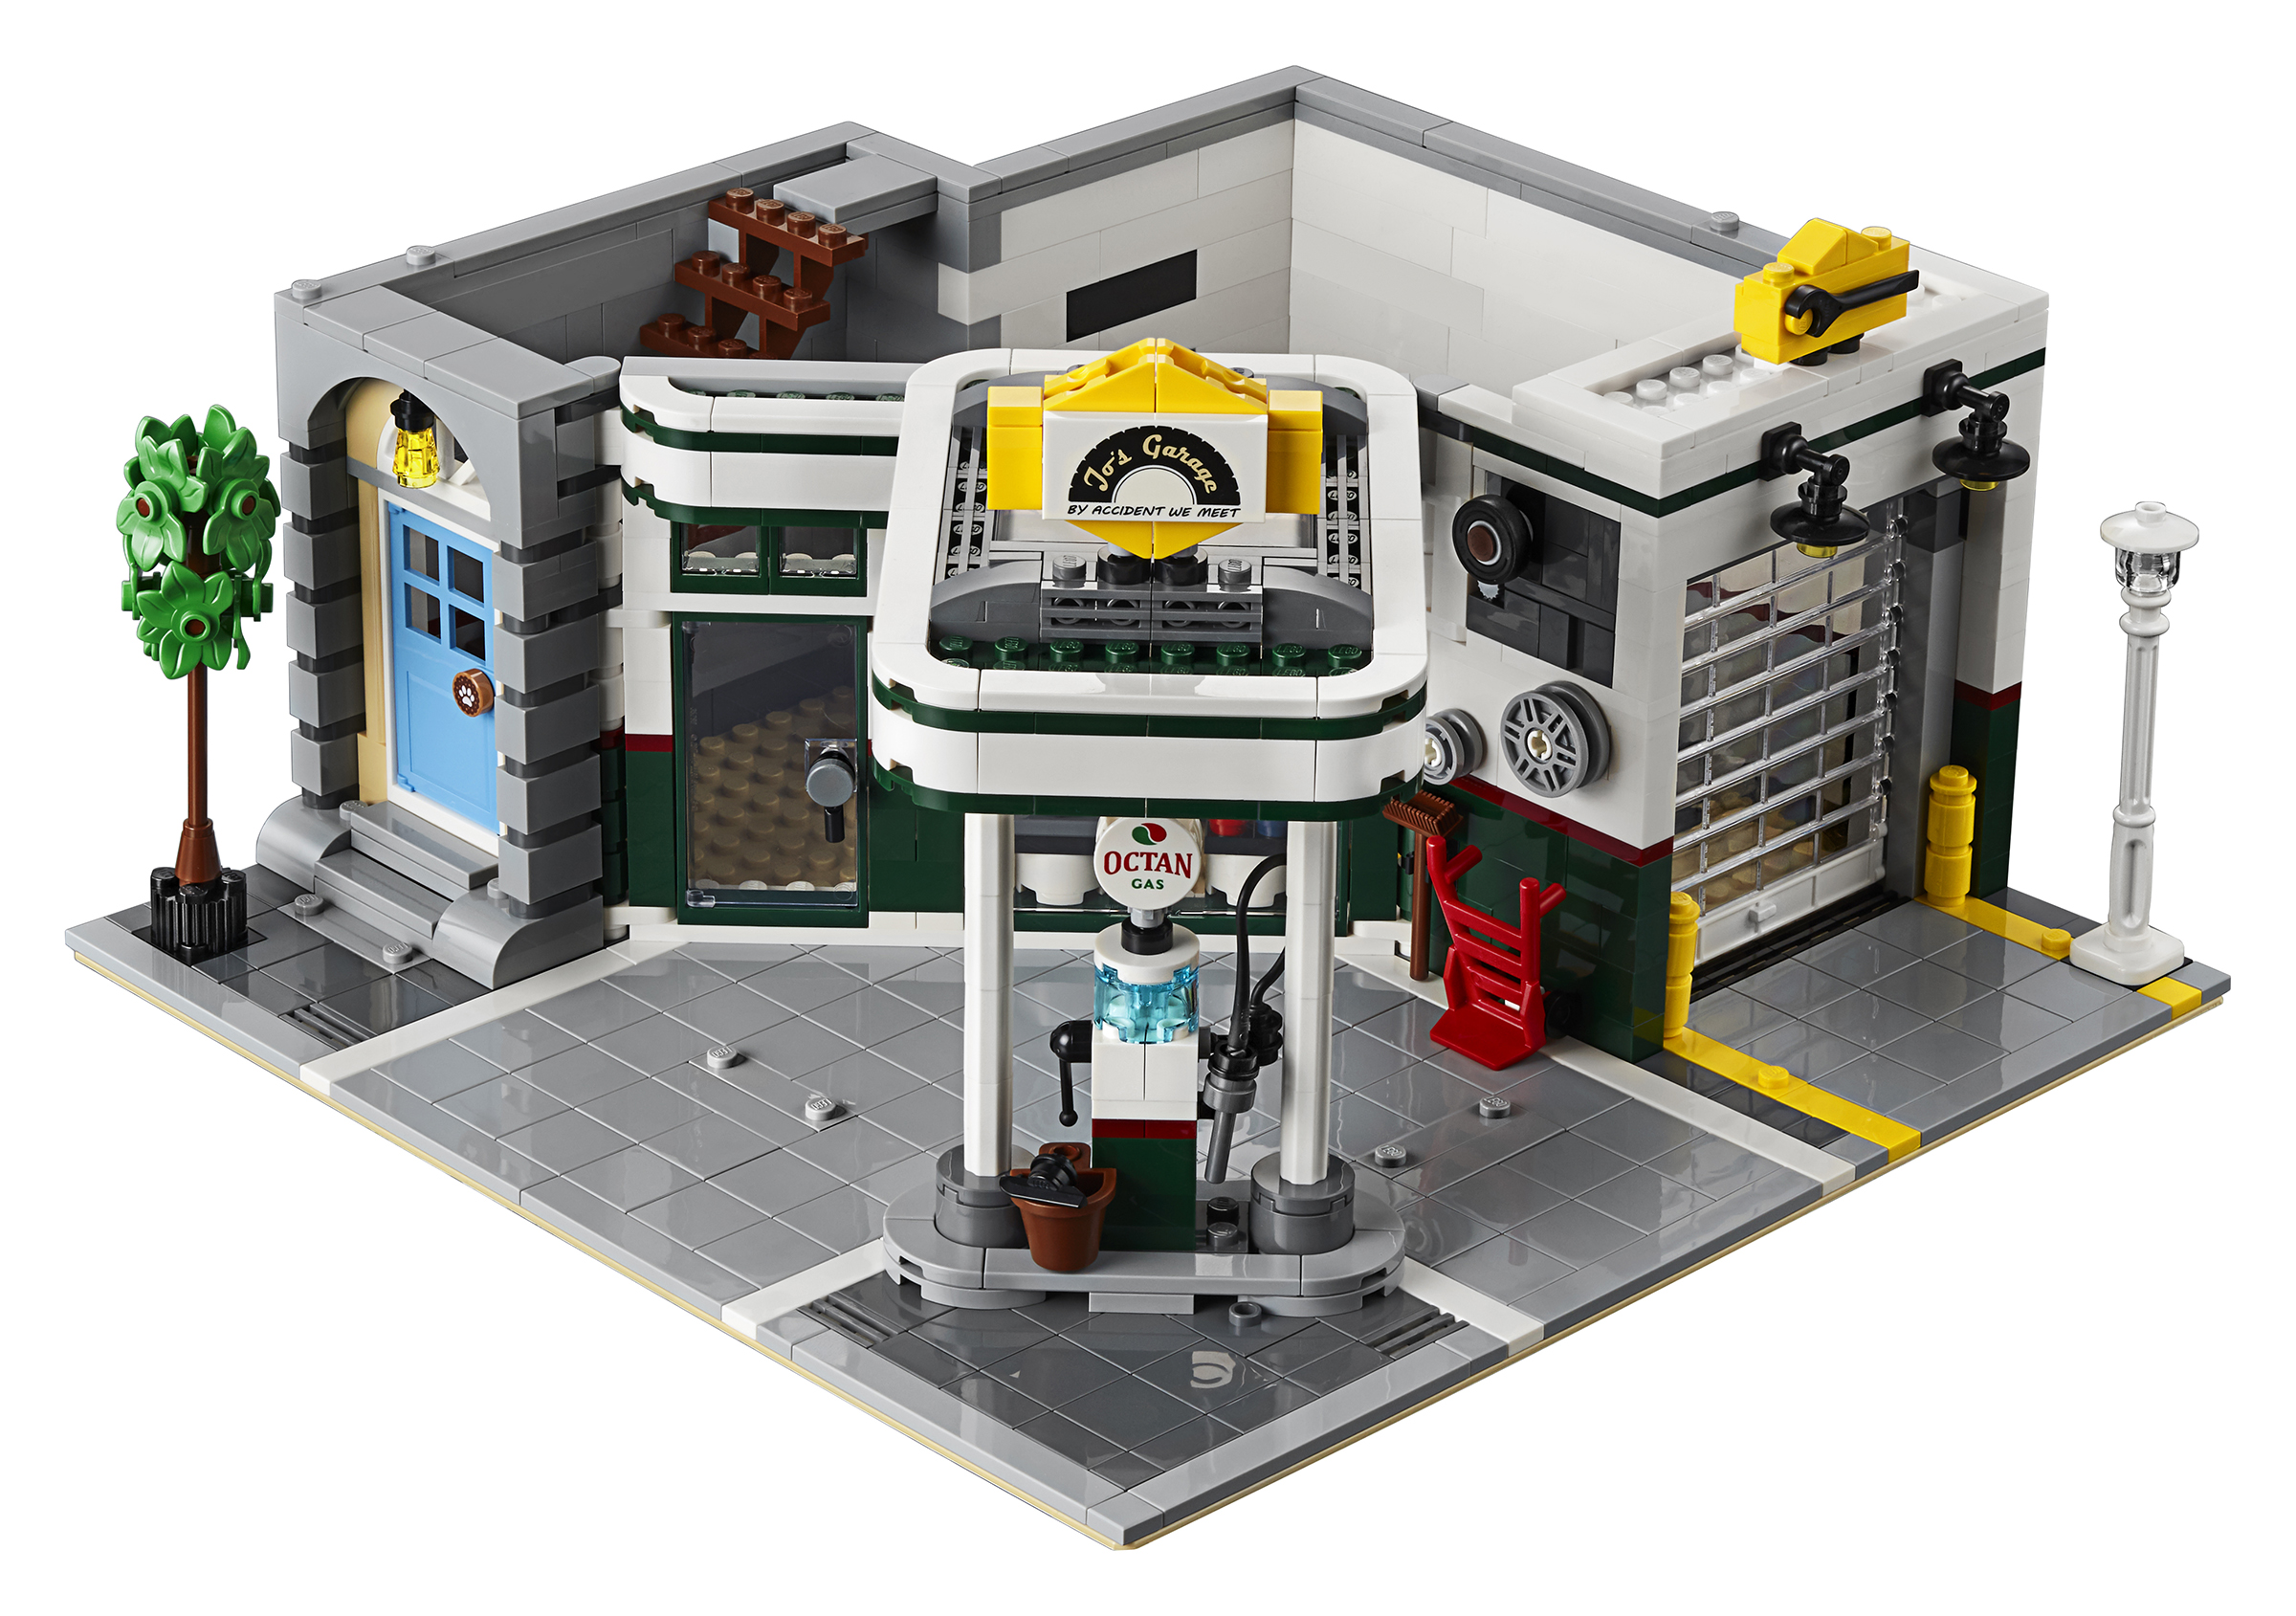 The Next Modular Building Is 10264 Corner Garage Bricking Around